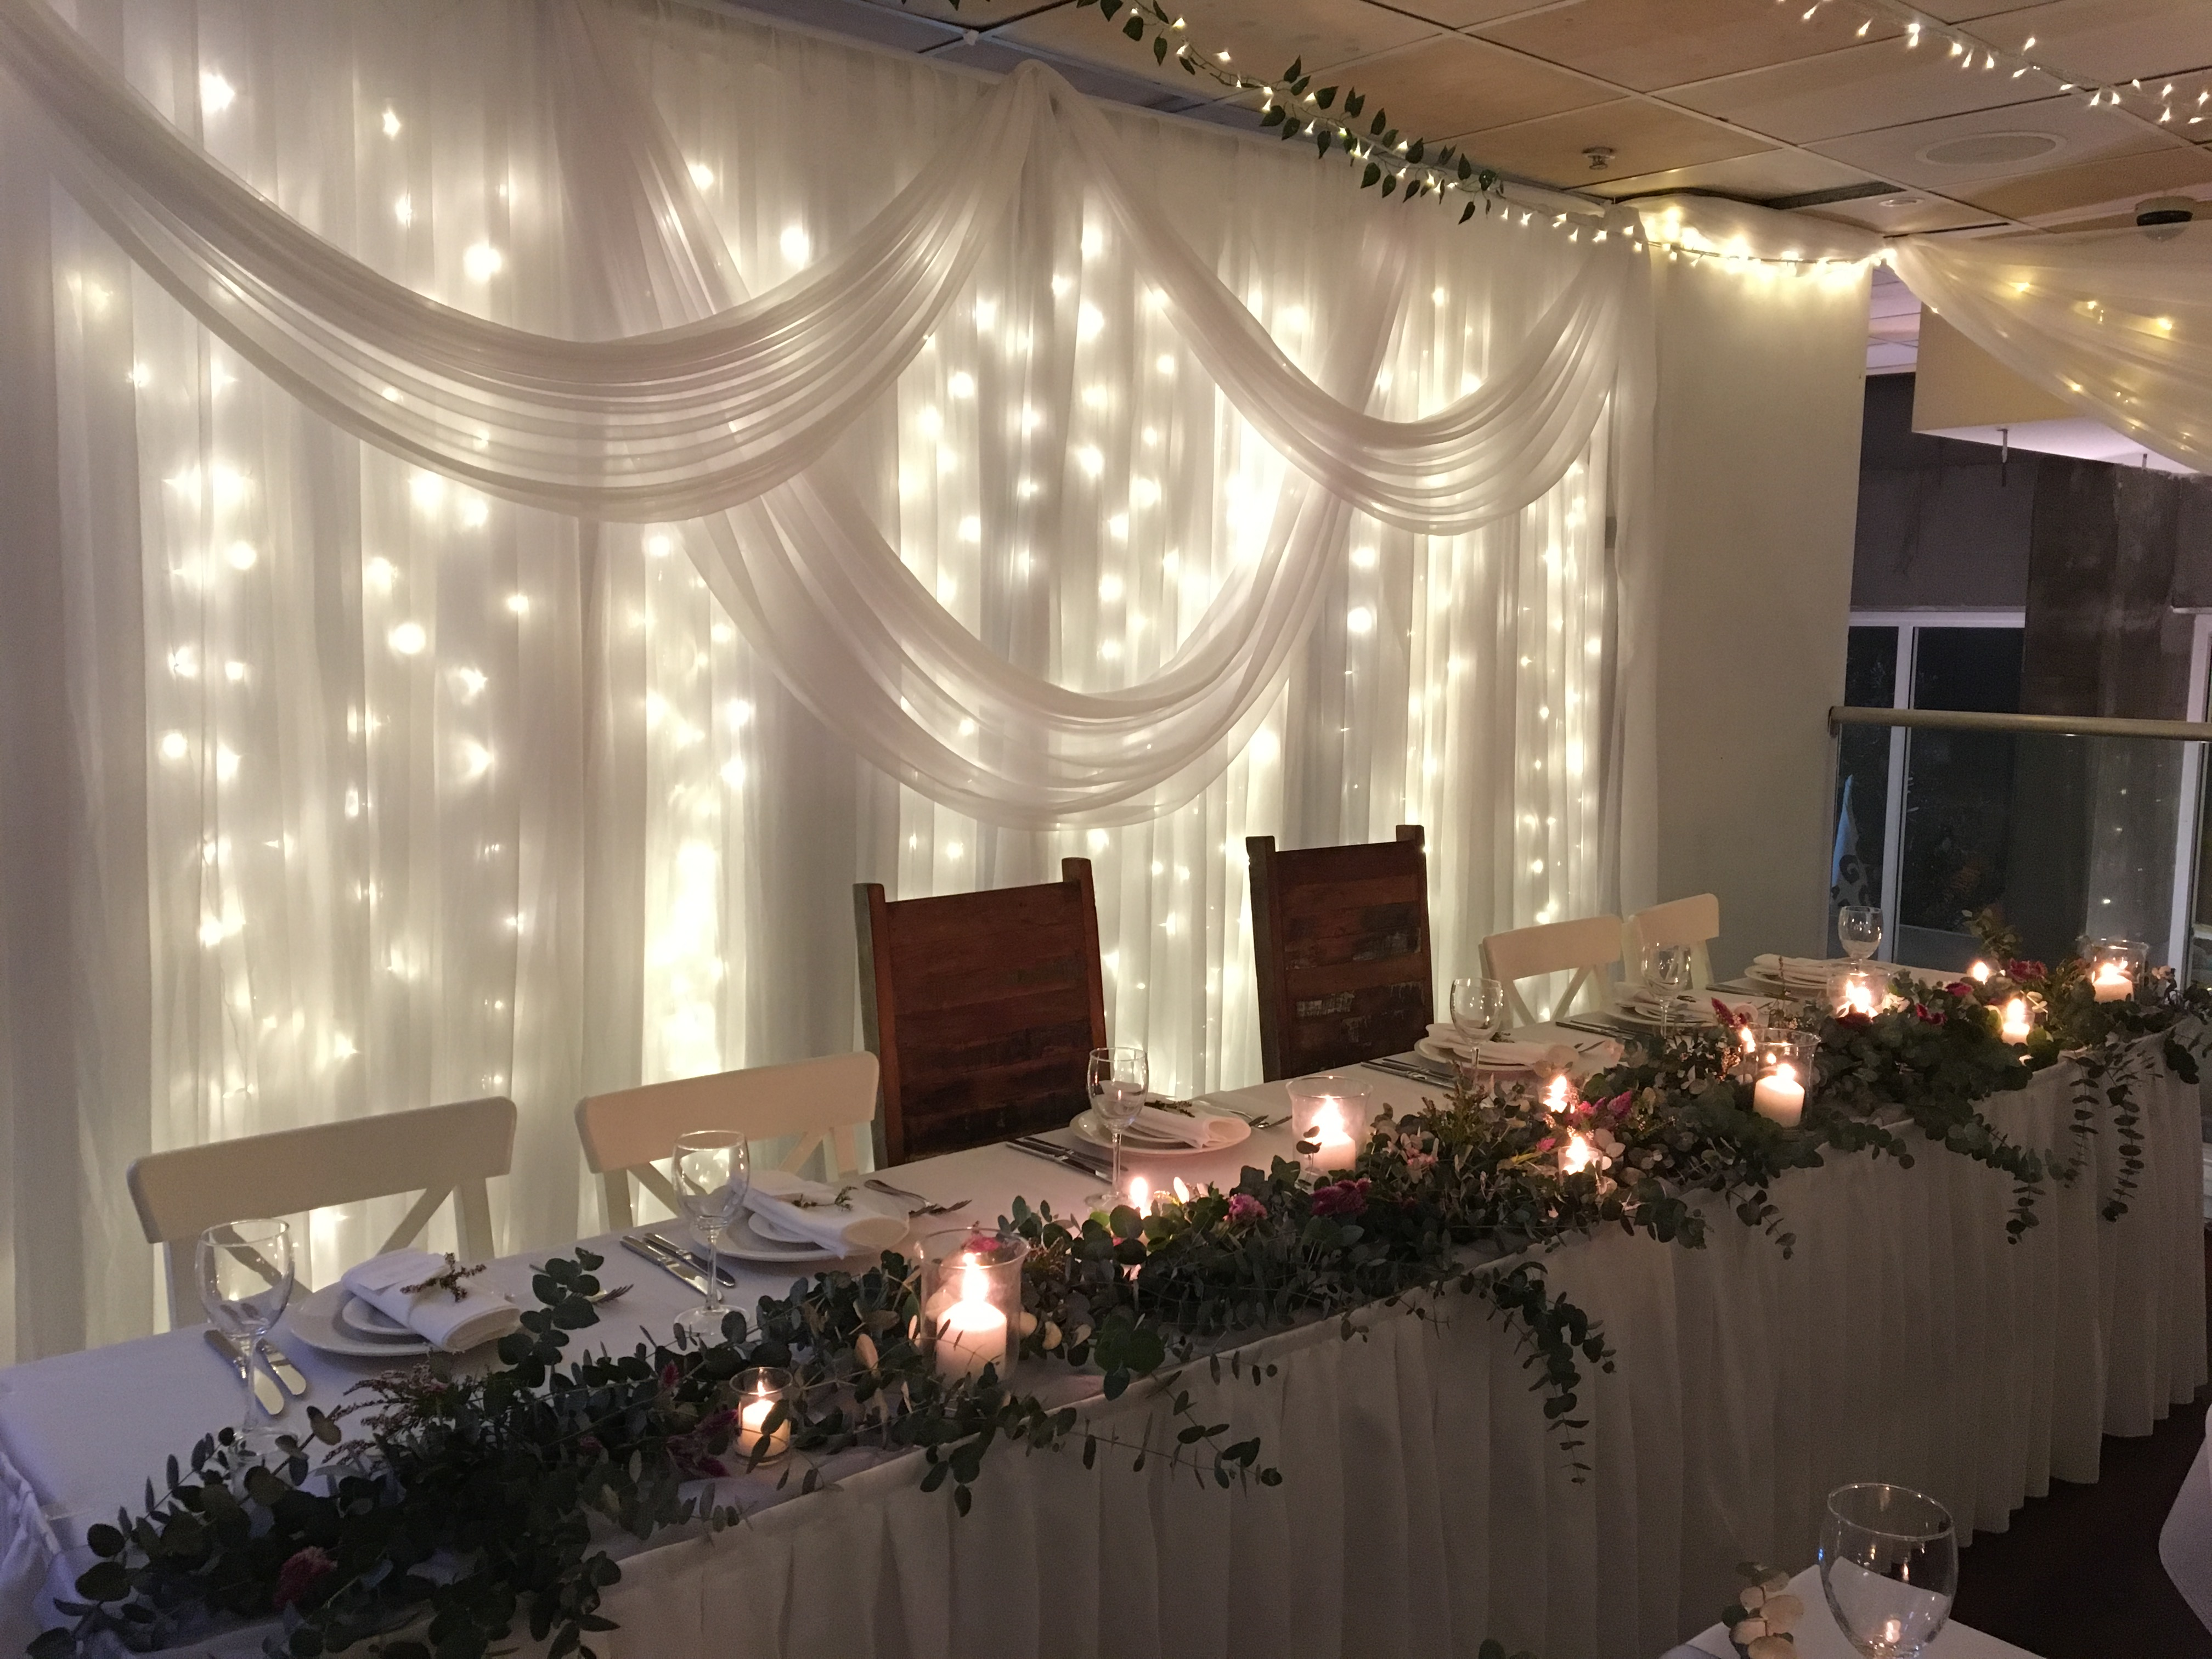 kirra_hub_wedding_reception_fary_light_backdrop.JPG